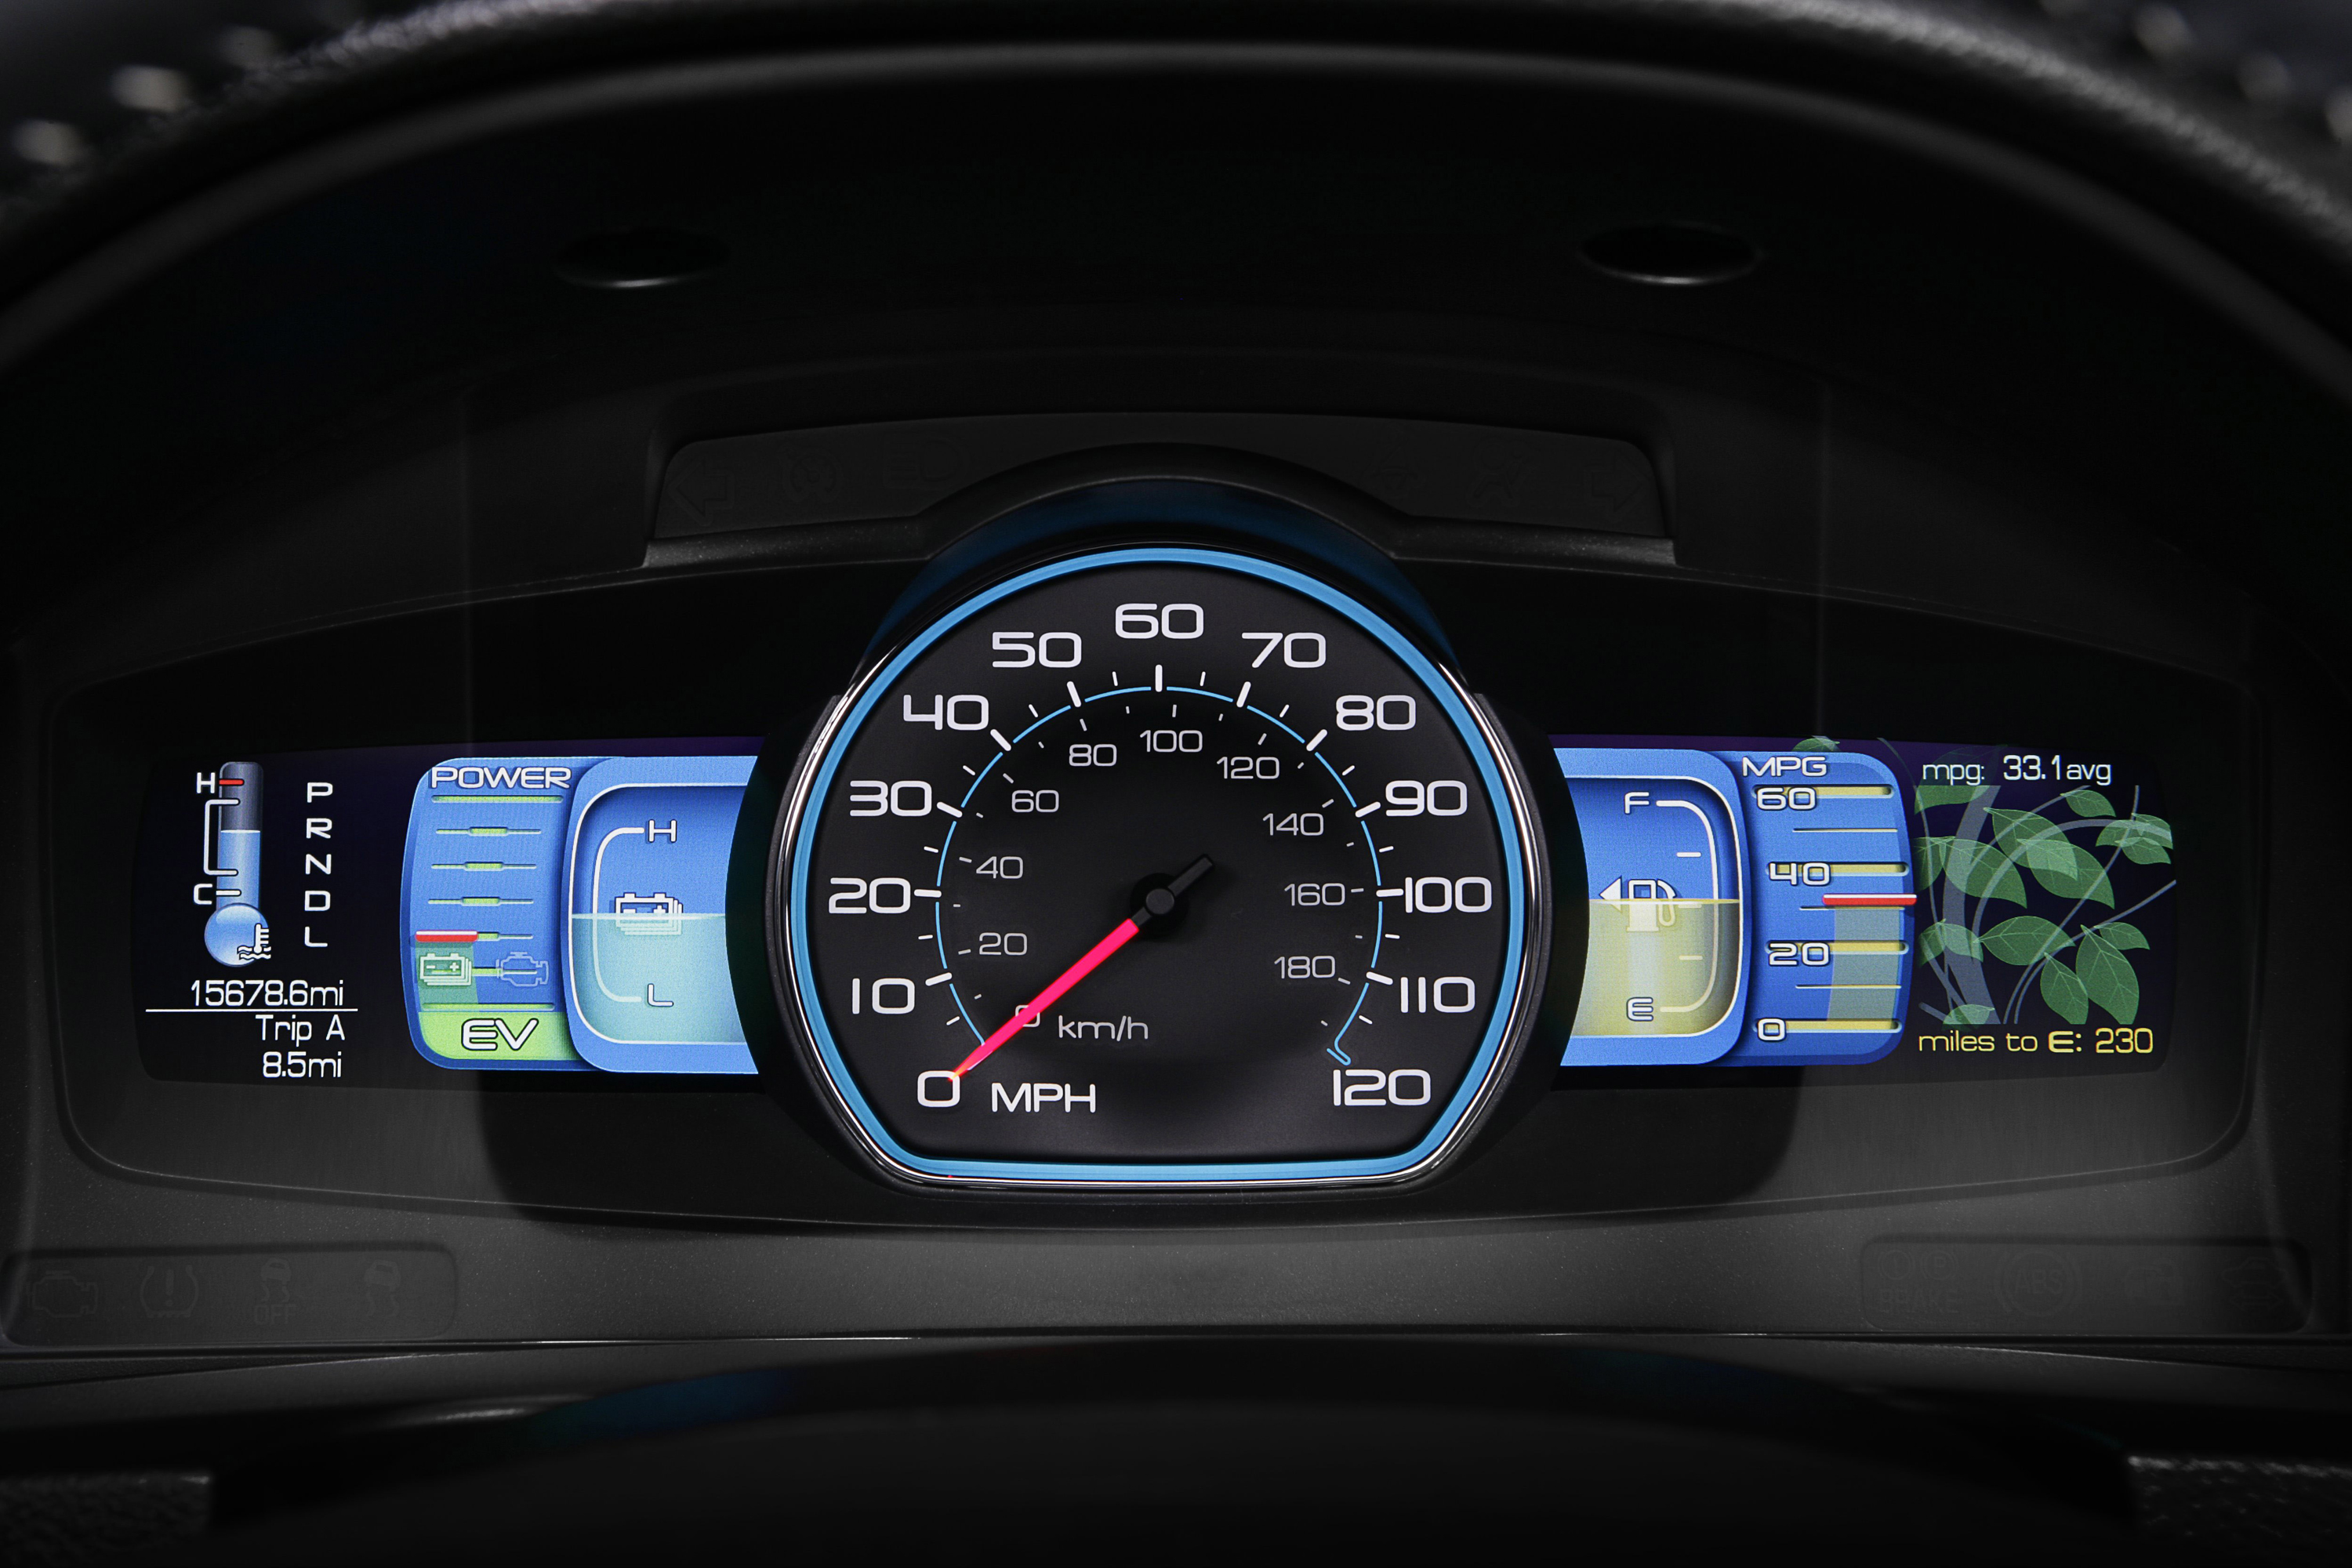 Ford Fusion Hybrid Smart Gauge with EcoGuide Intriguing Even For Avid Hypermillers